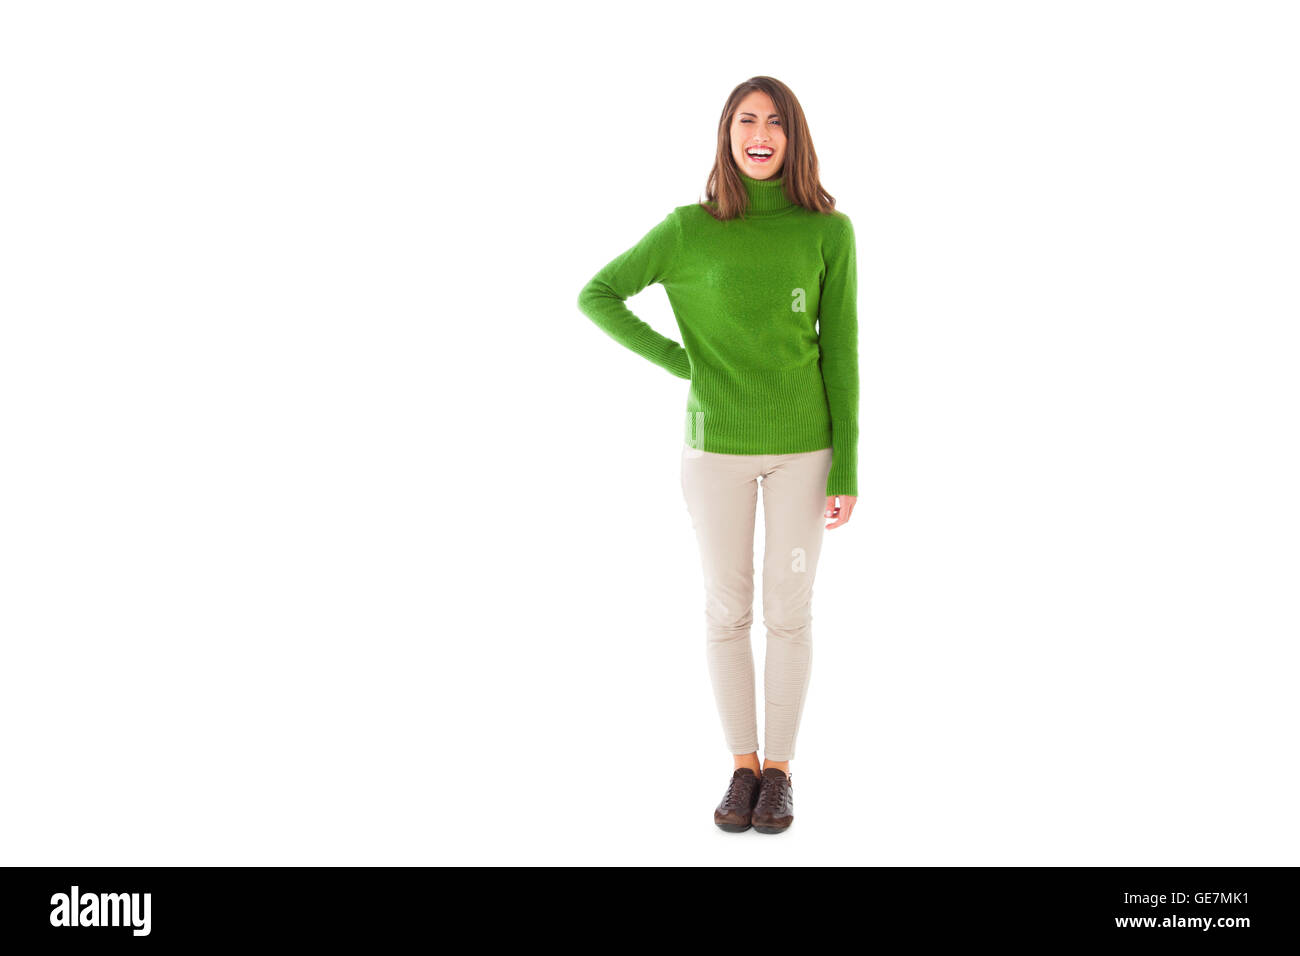 Full length of young woman smiling. Beautiful female is wearing green turtleneck sweater. She is standing isolated Stock Photo